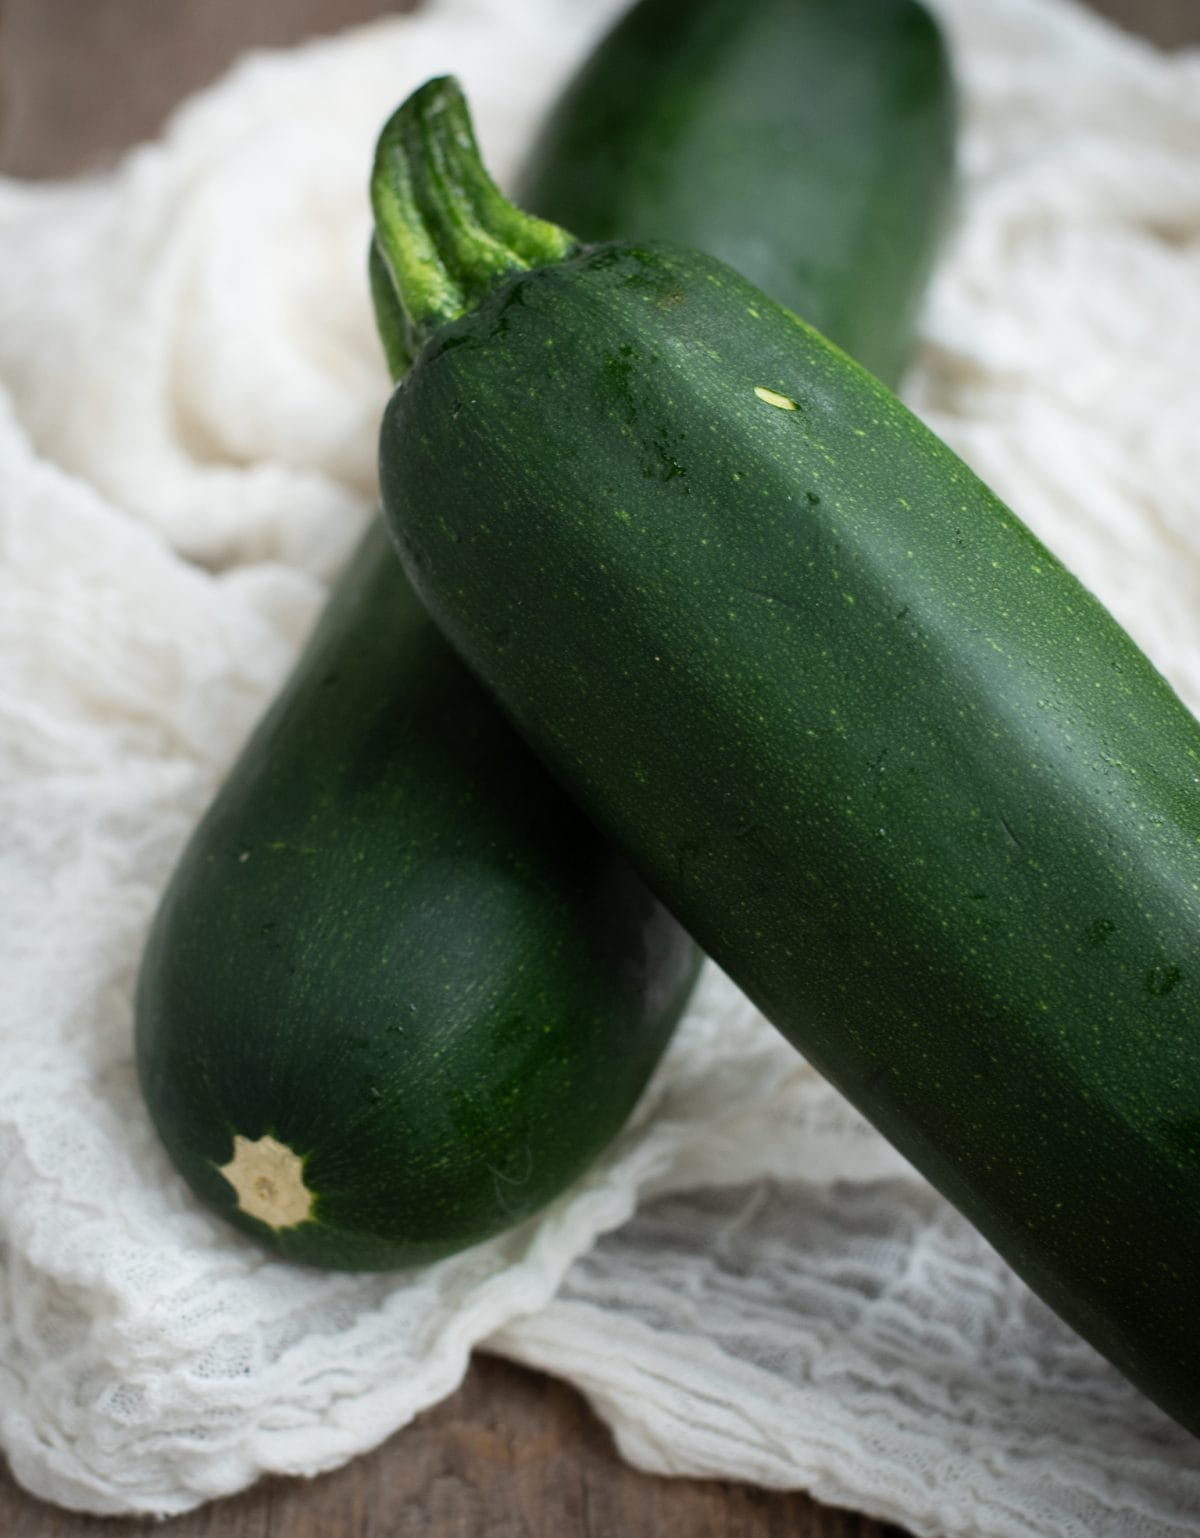 Picture of two zucchini stacked on top of each other